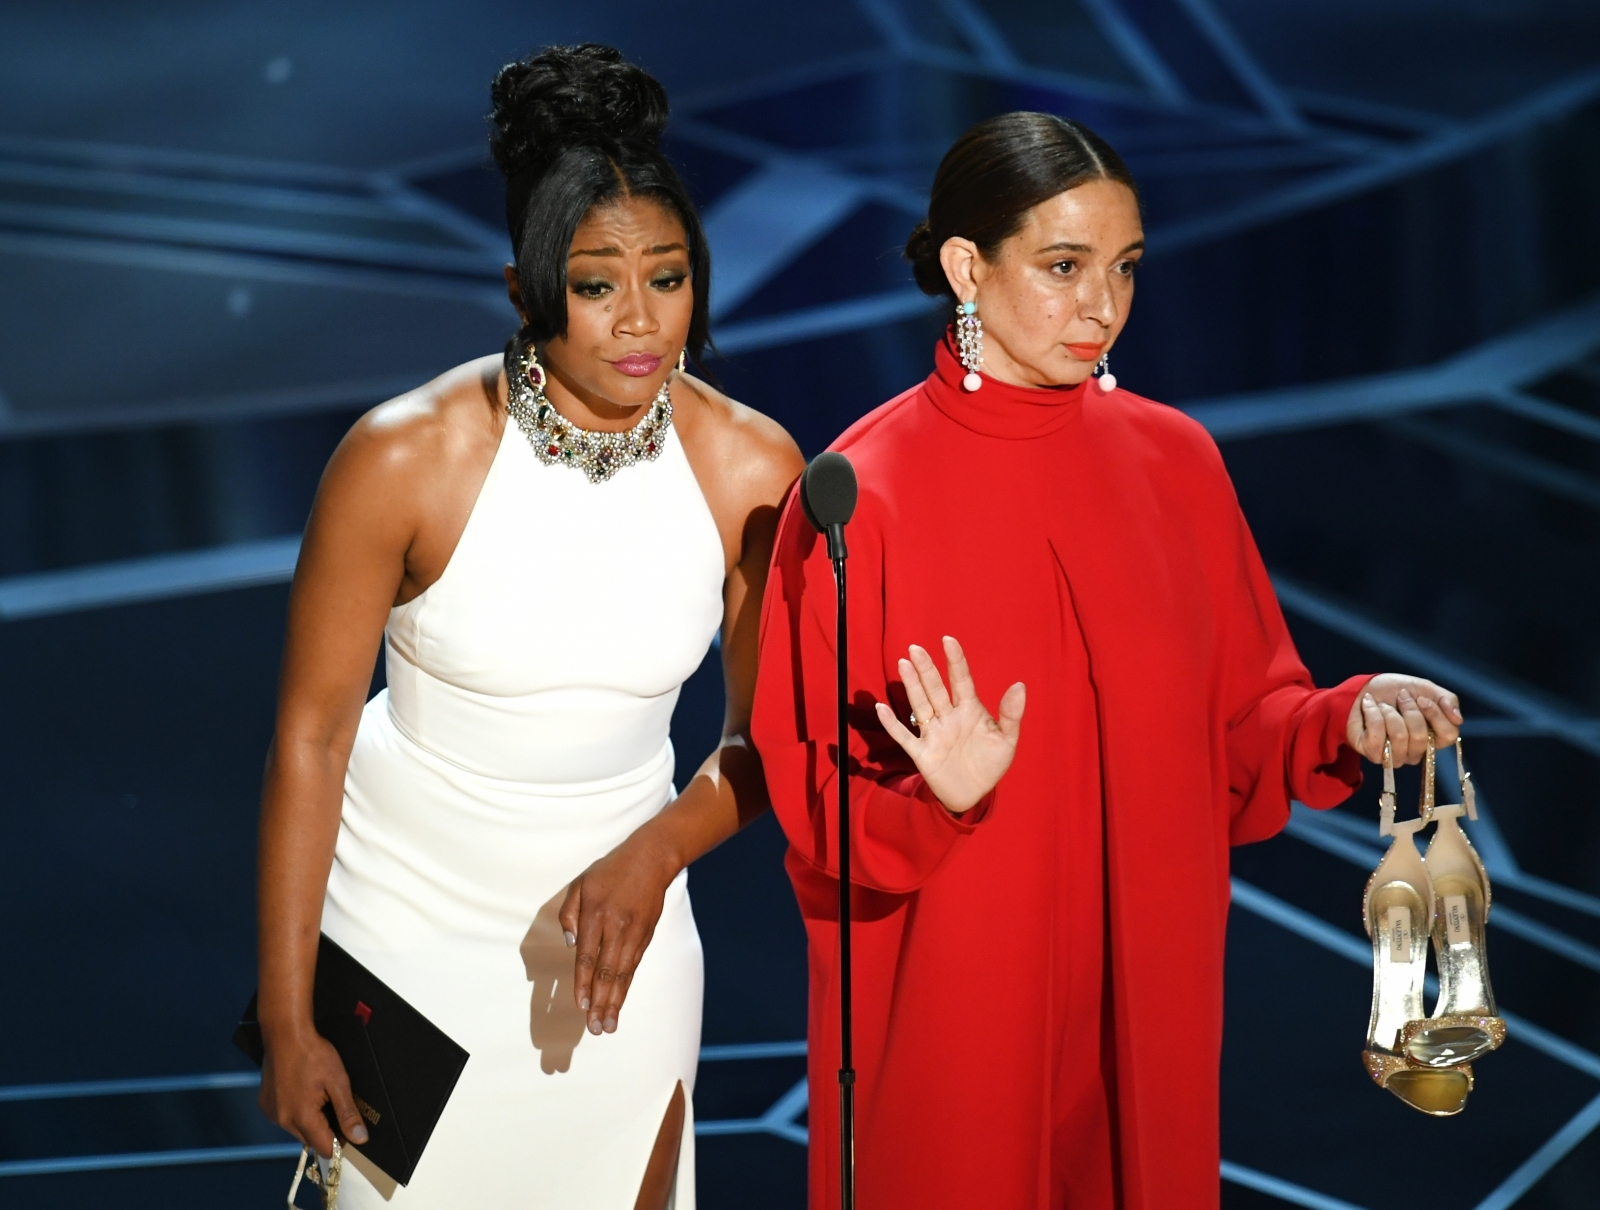 Tiffany Haddish's Oscars gown was a tribute to her late Eritrean father